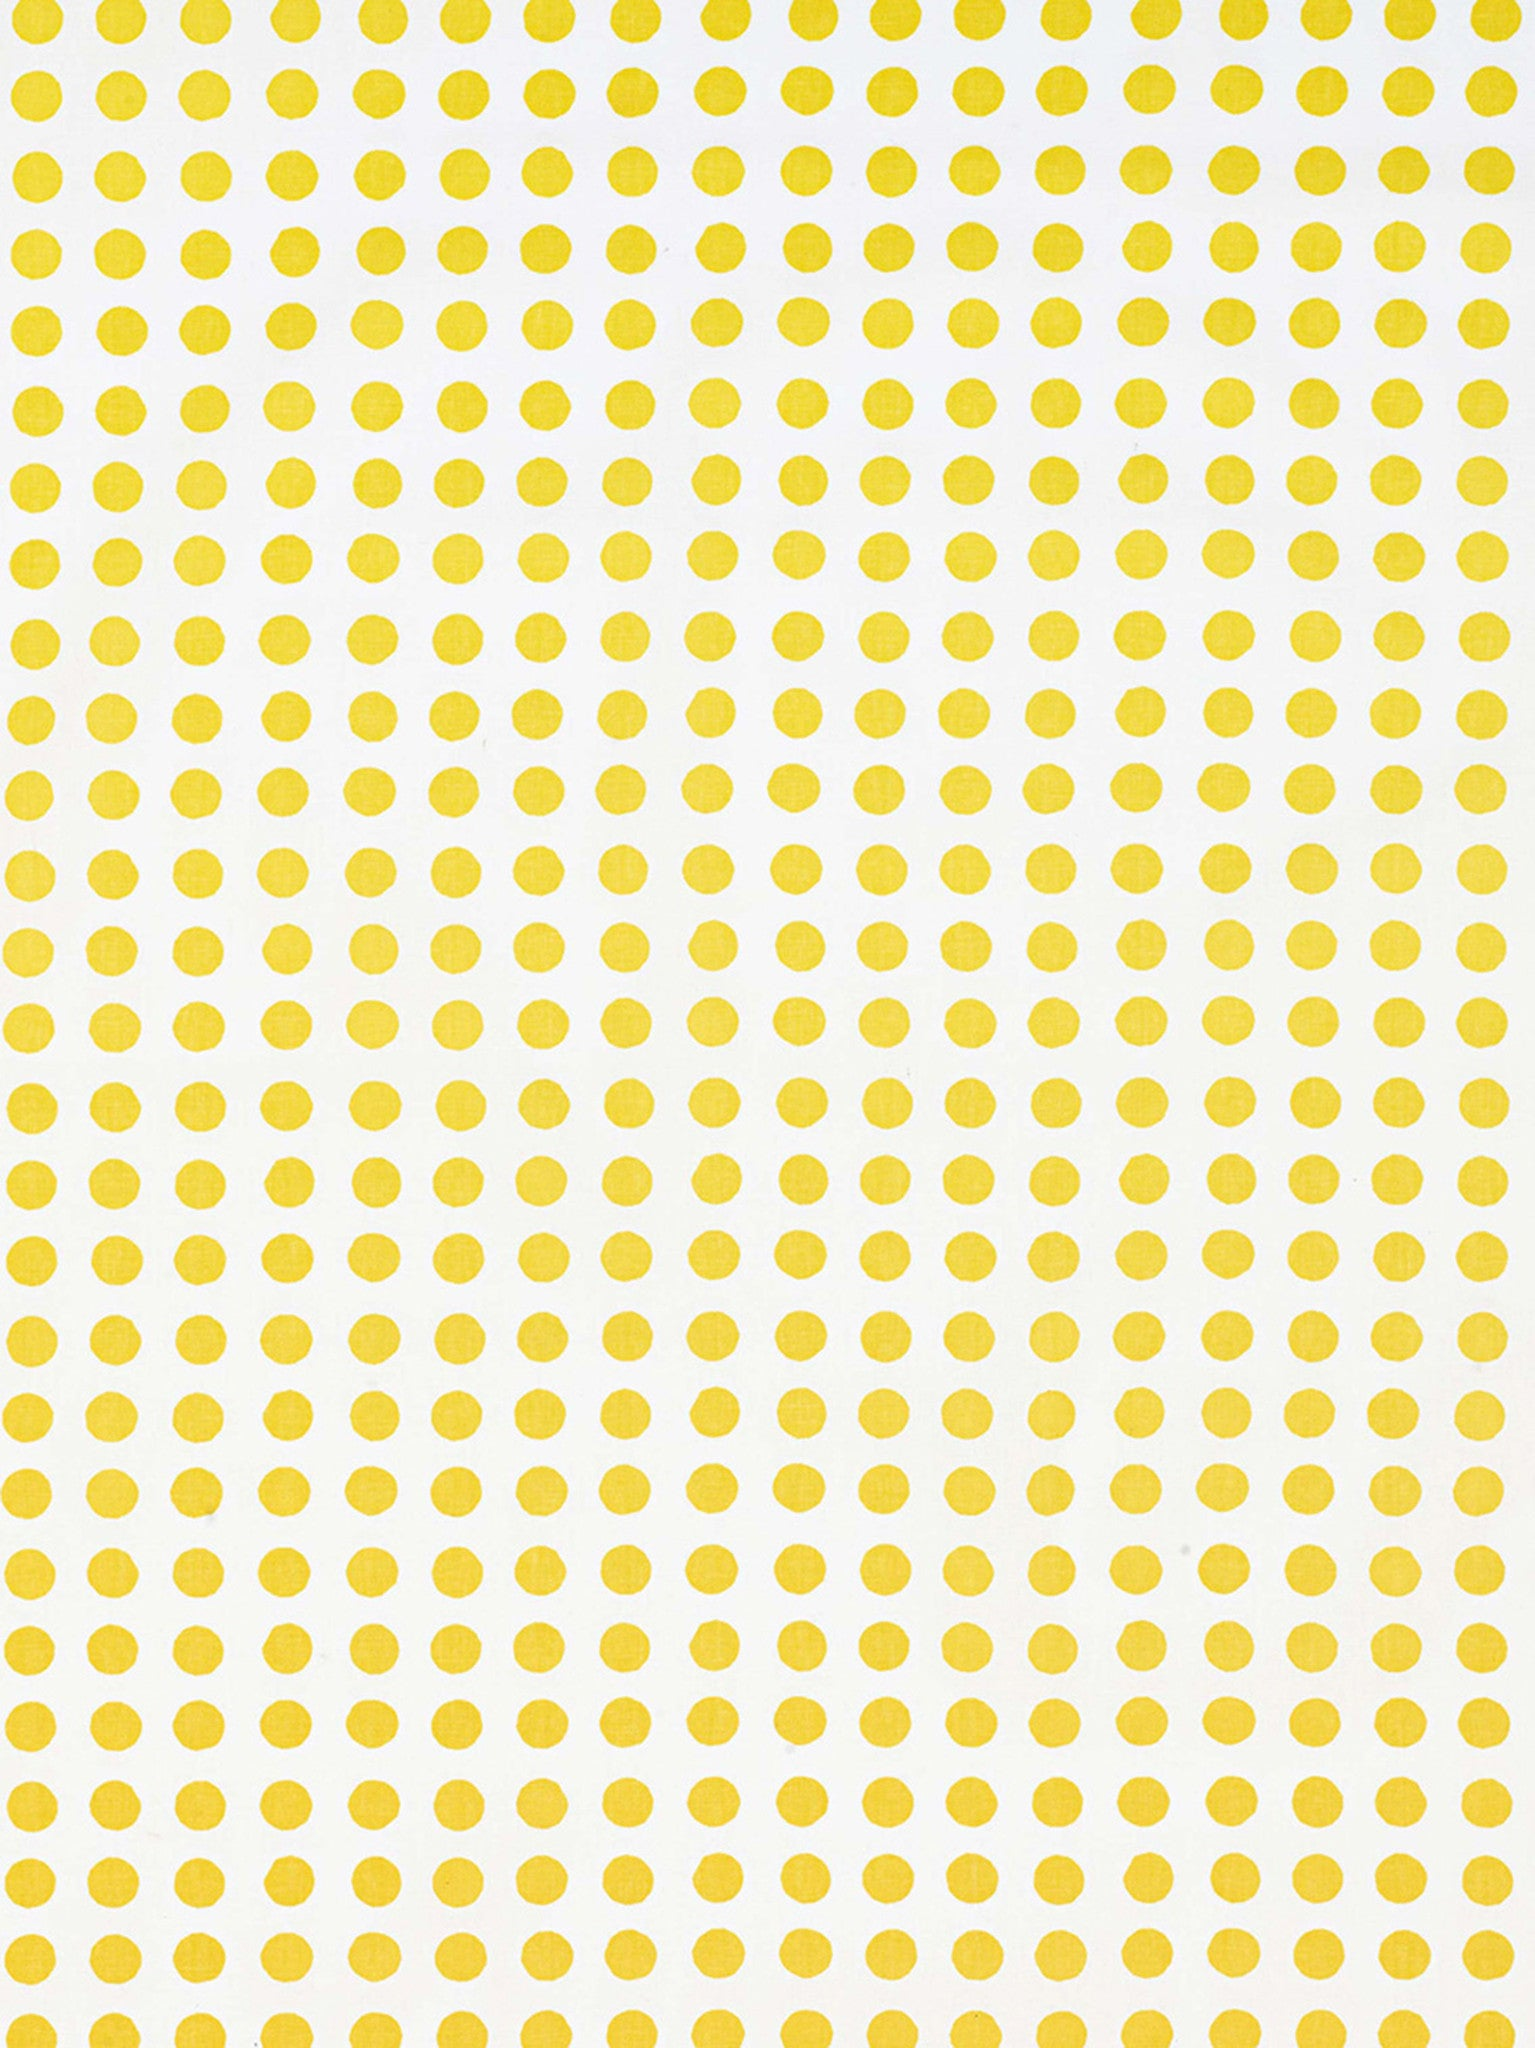 London Polka Dot Pattern Cotton Linen Home Decor Fabric by the Meter or by the yard for curtains, blinds, upholstery in Maize Yellow ships from Canada (USA)